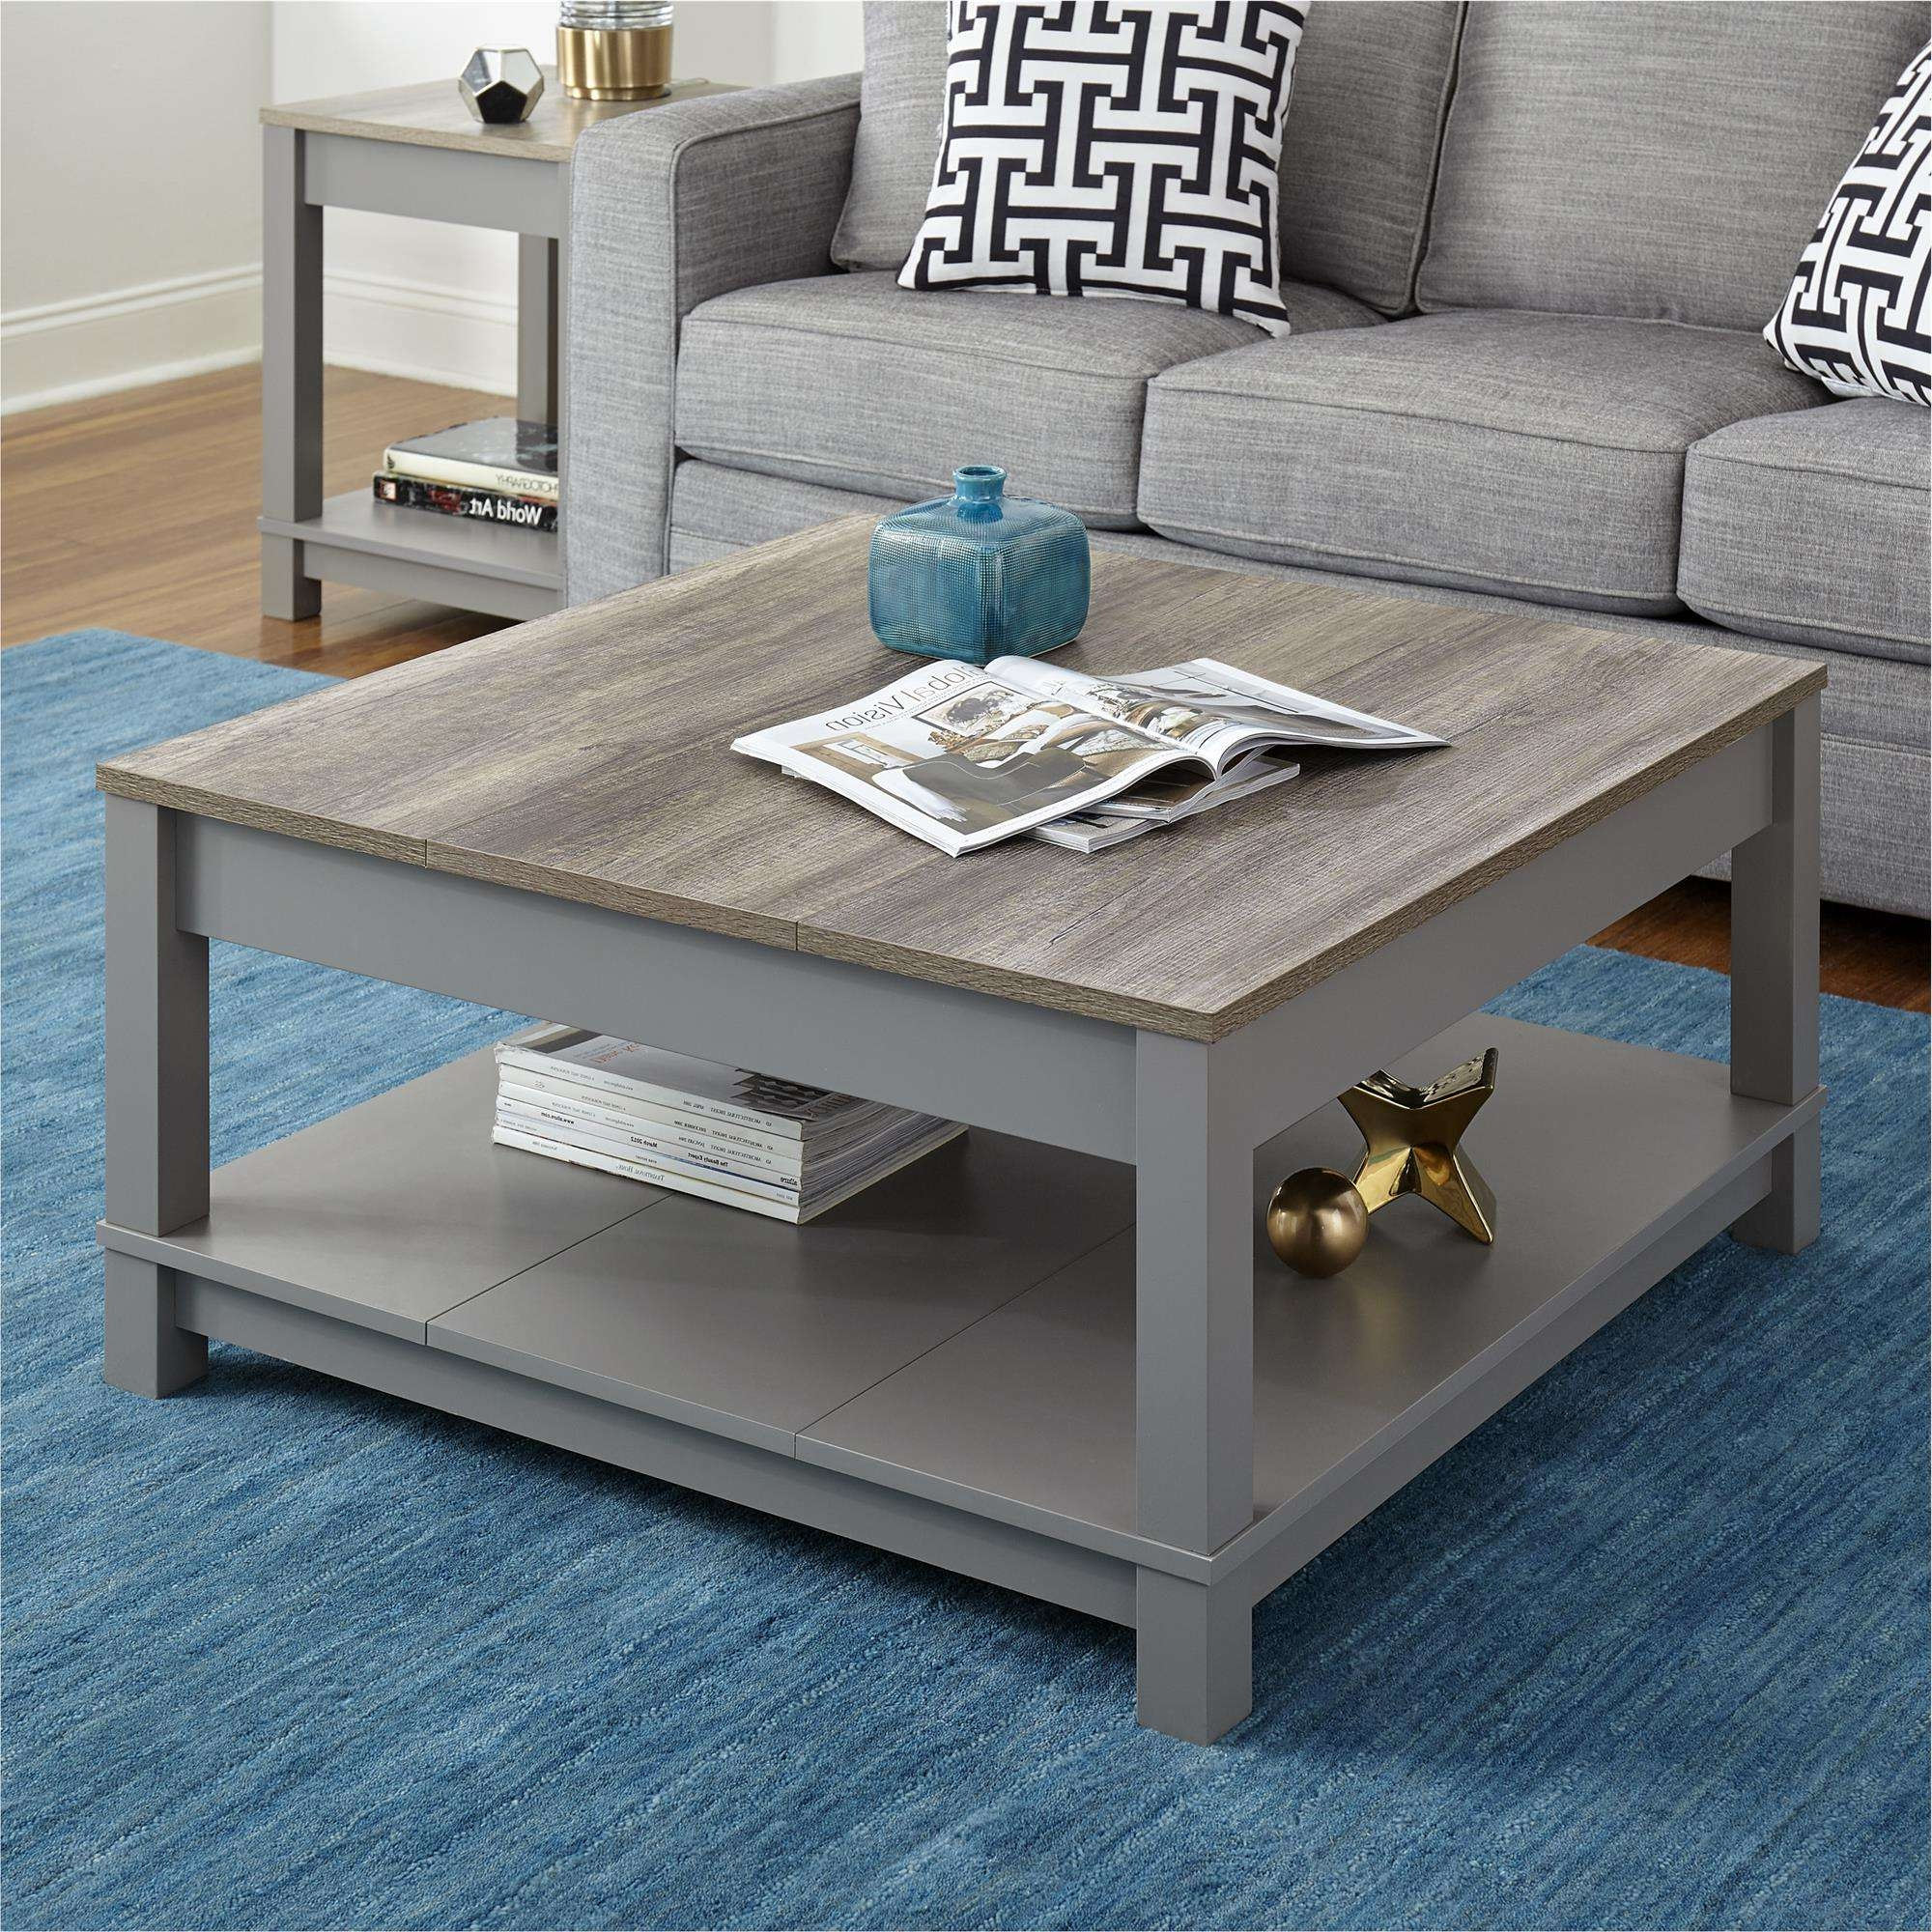 Carver Coffee Table, Gray/weathered Oak (View 19 of 20)